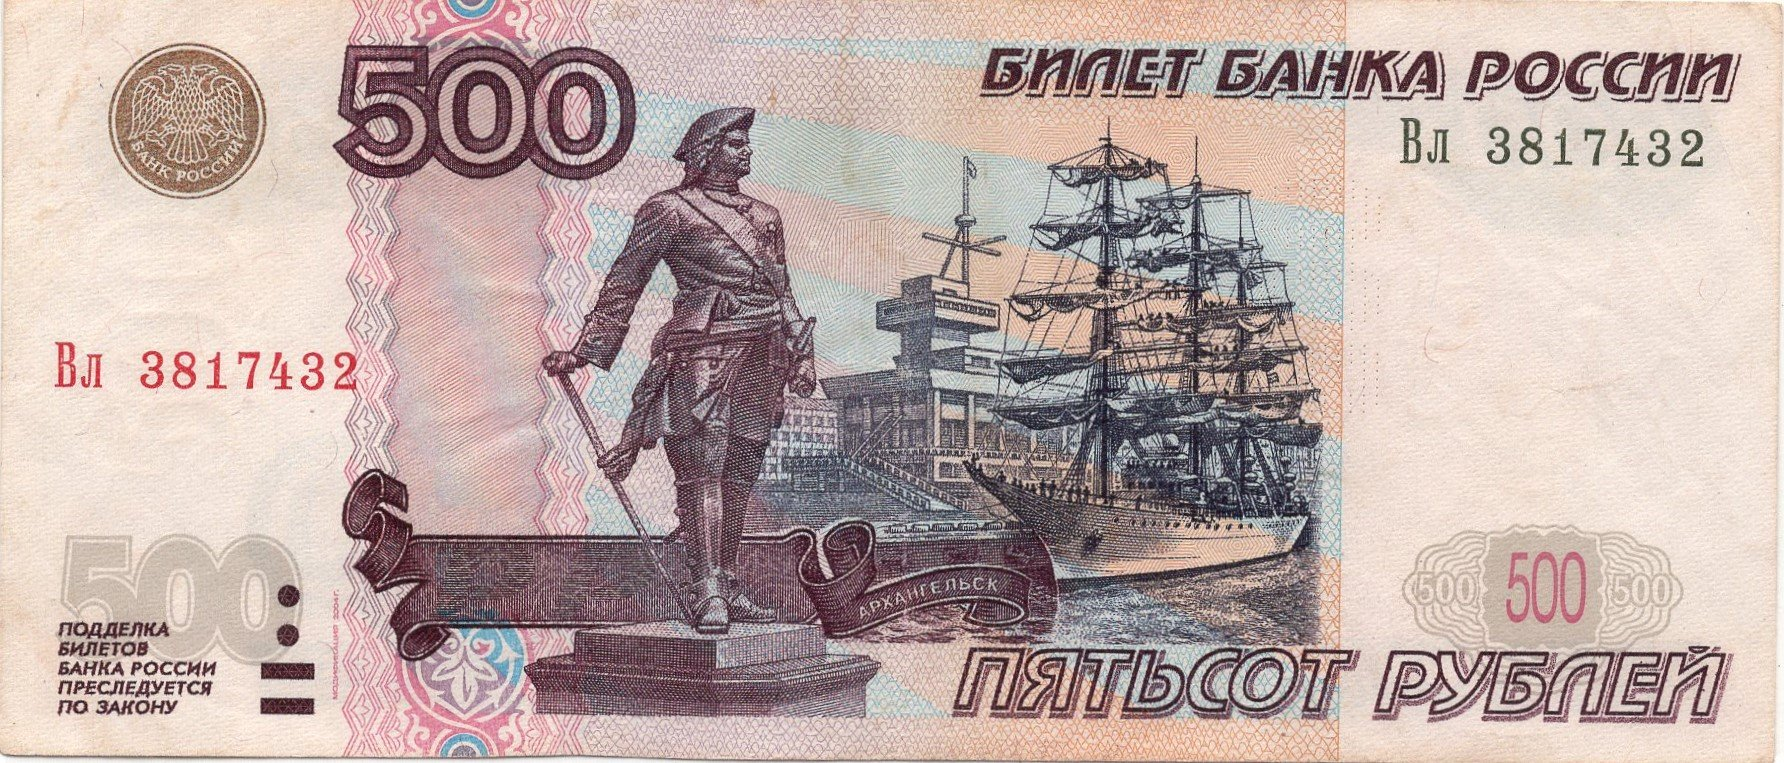 Russia 500 roubles 1997 banknote for sale